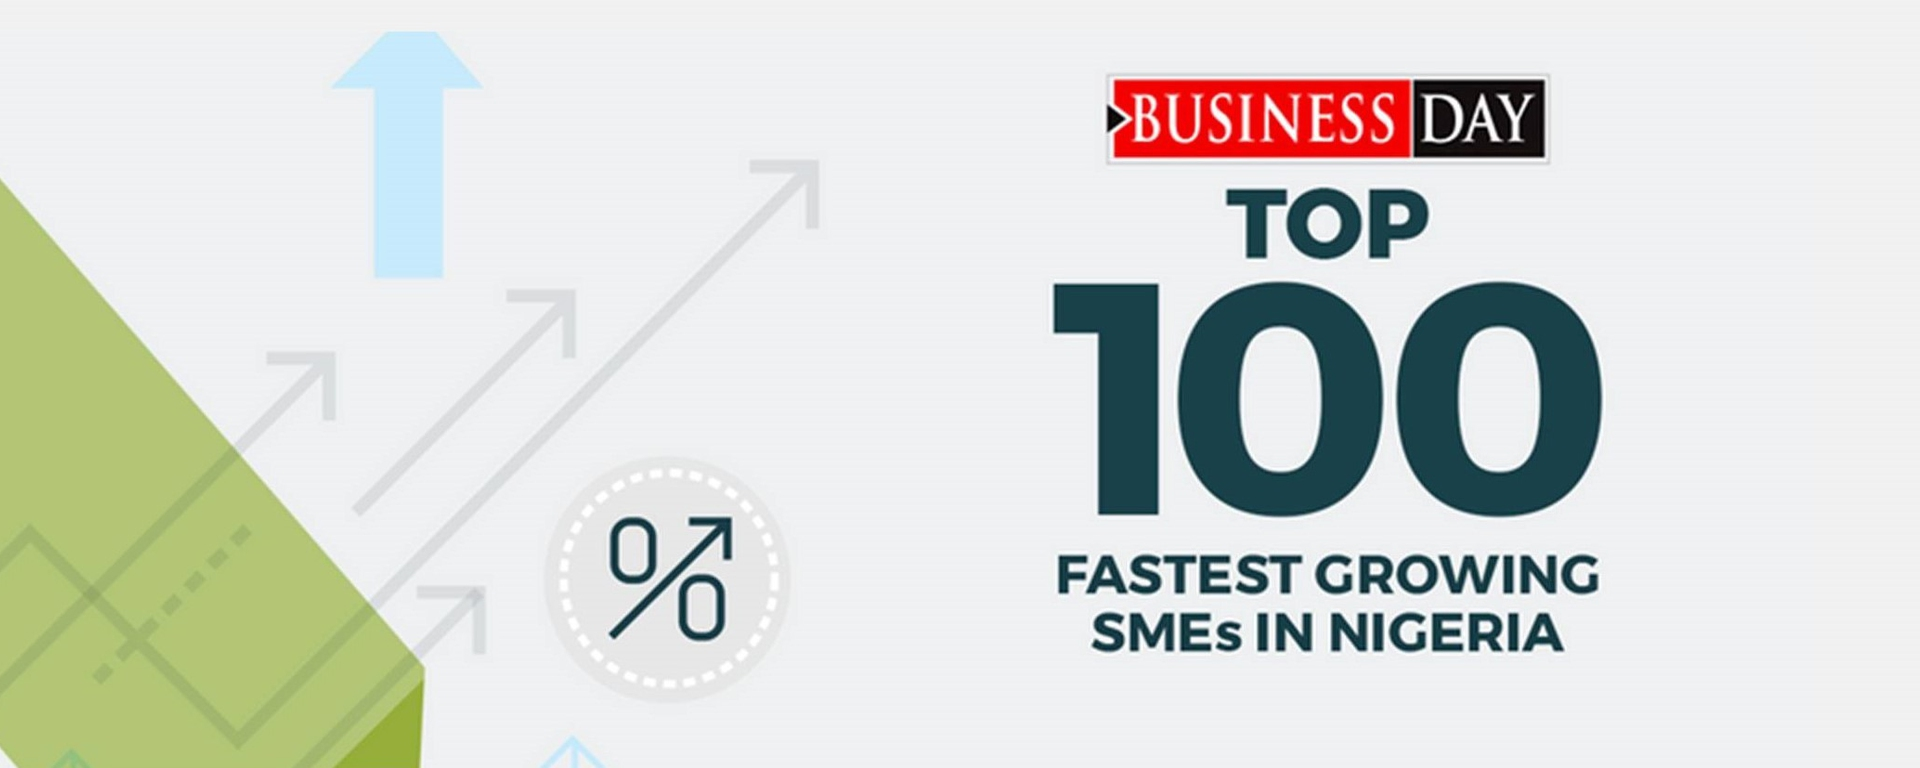 Business Day - The Top 100 Fastest Growing SMEs Award Movemeback African event cover image